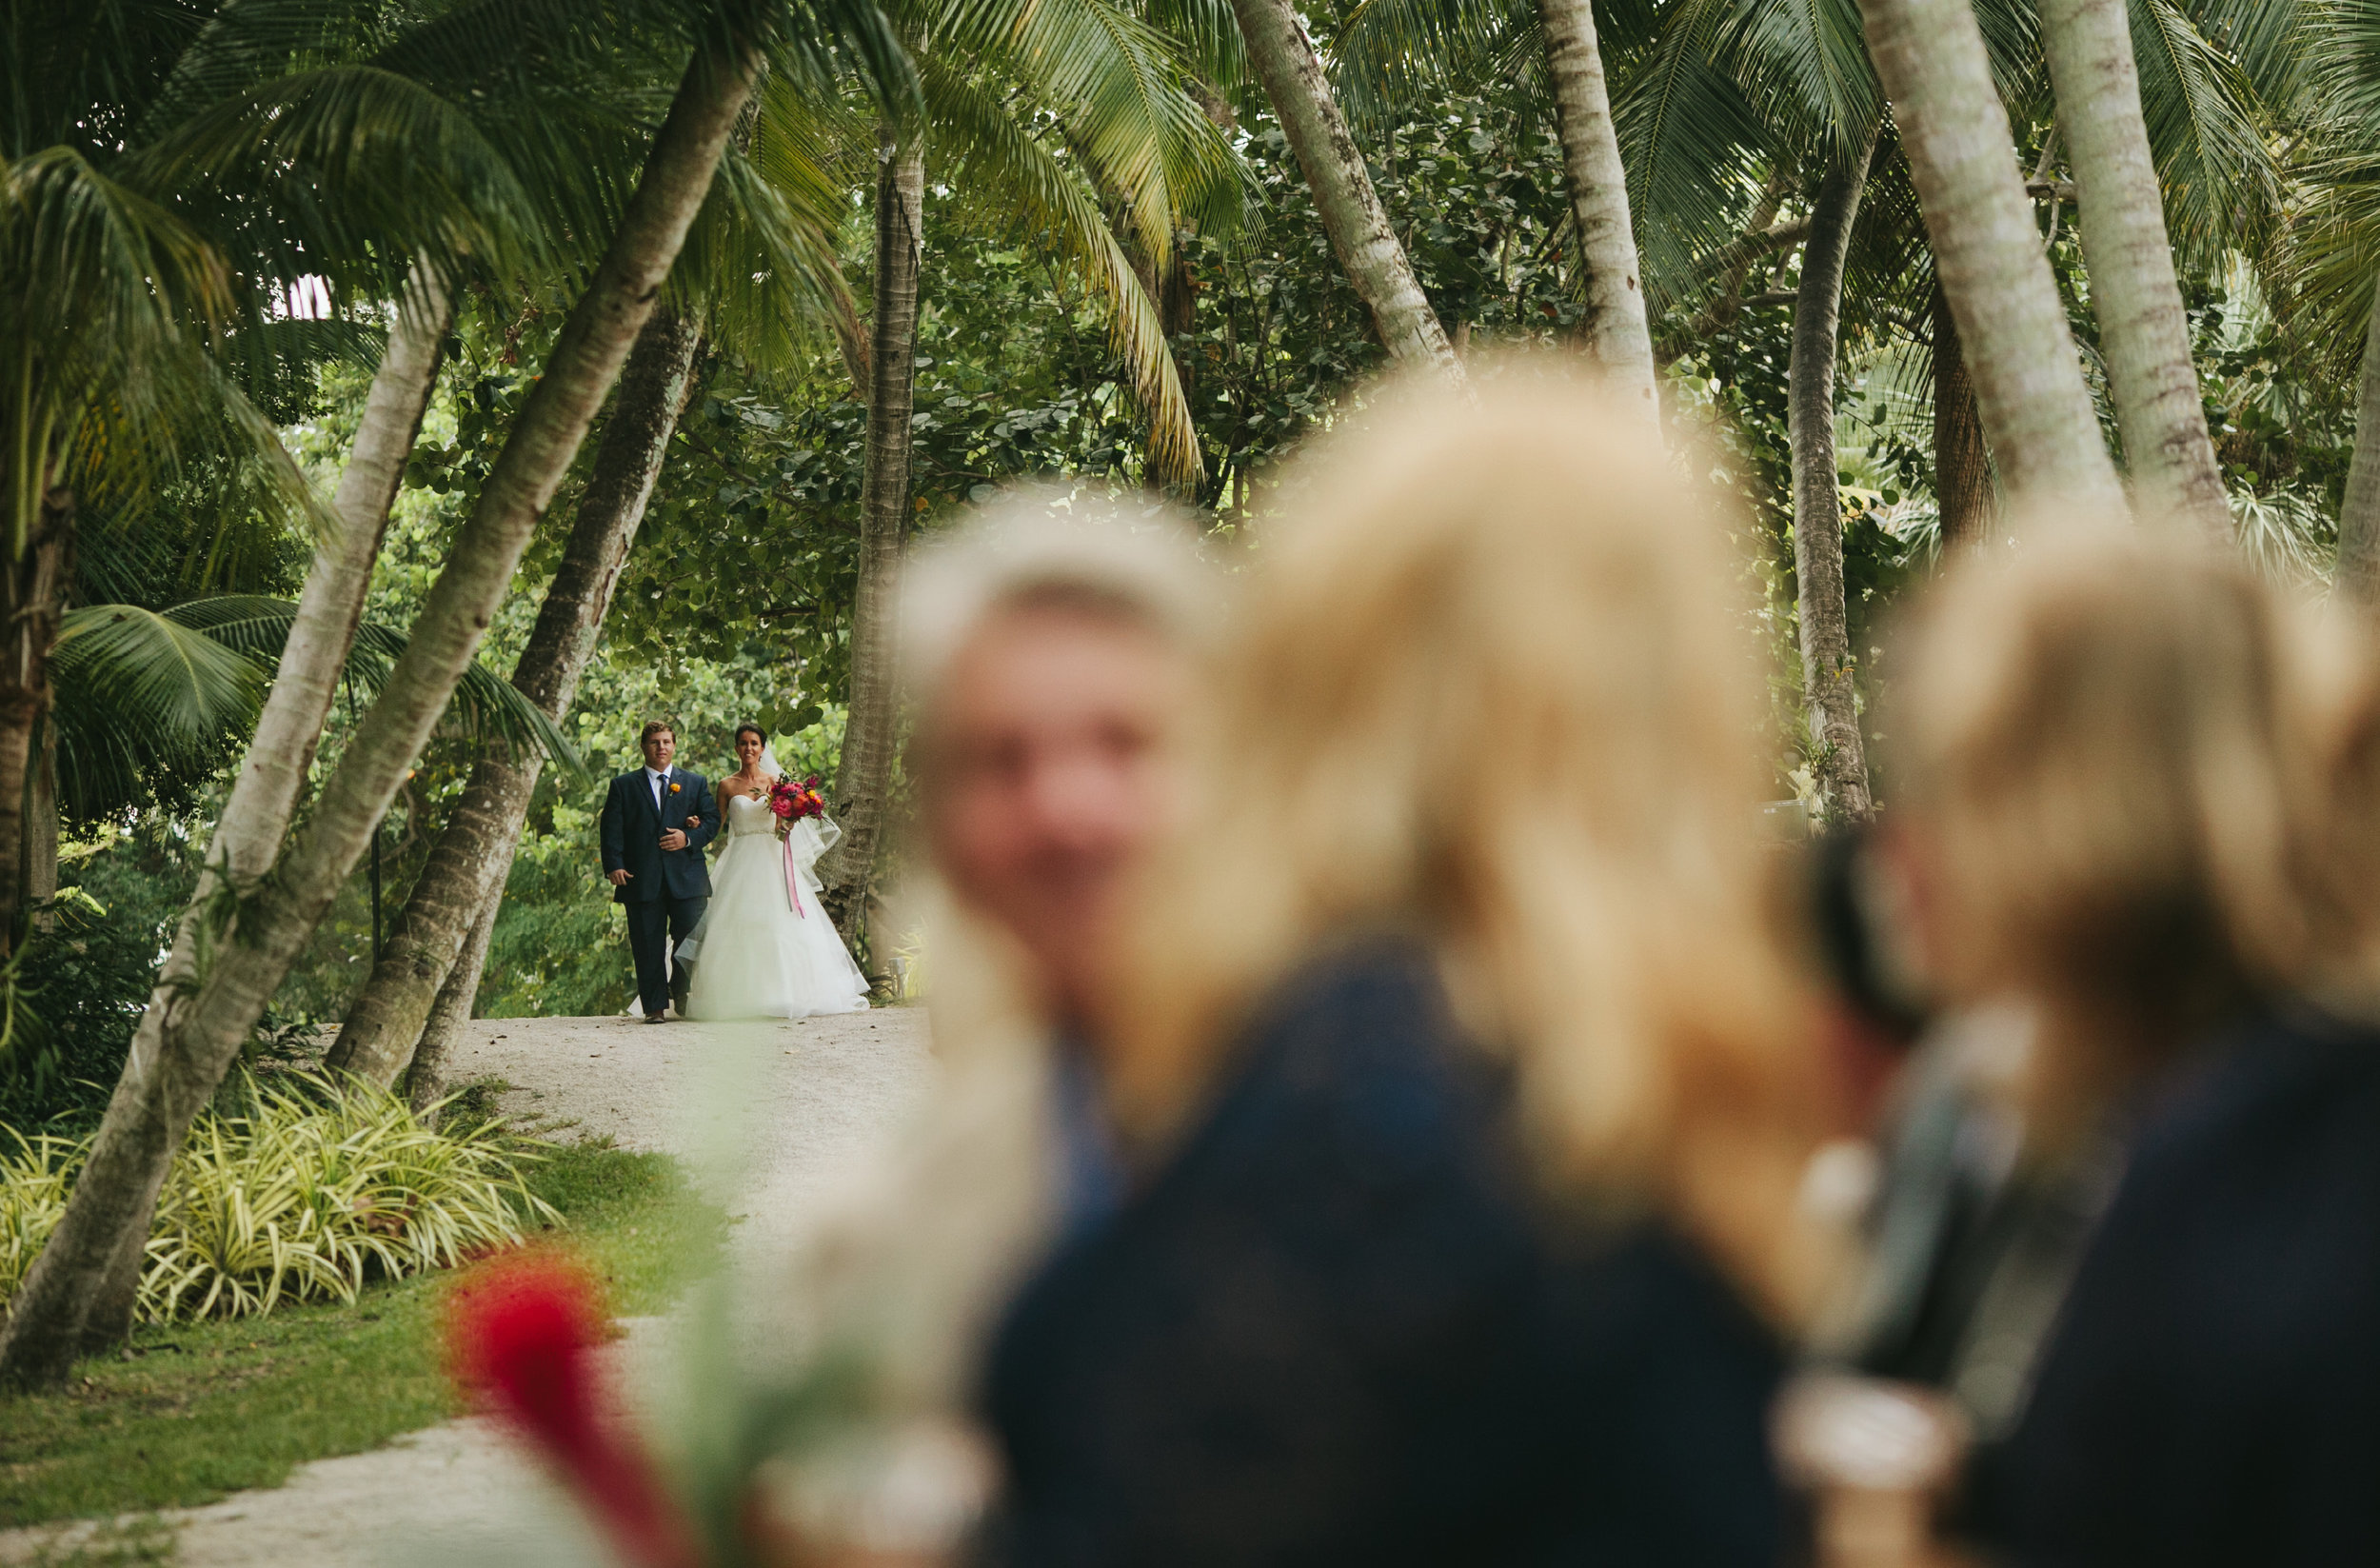 Heather + Greg's Wedding at the Bonnet House Ft Lauderdale51.jpg